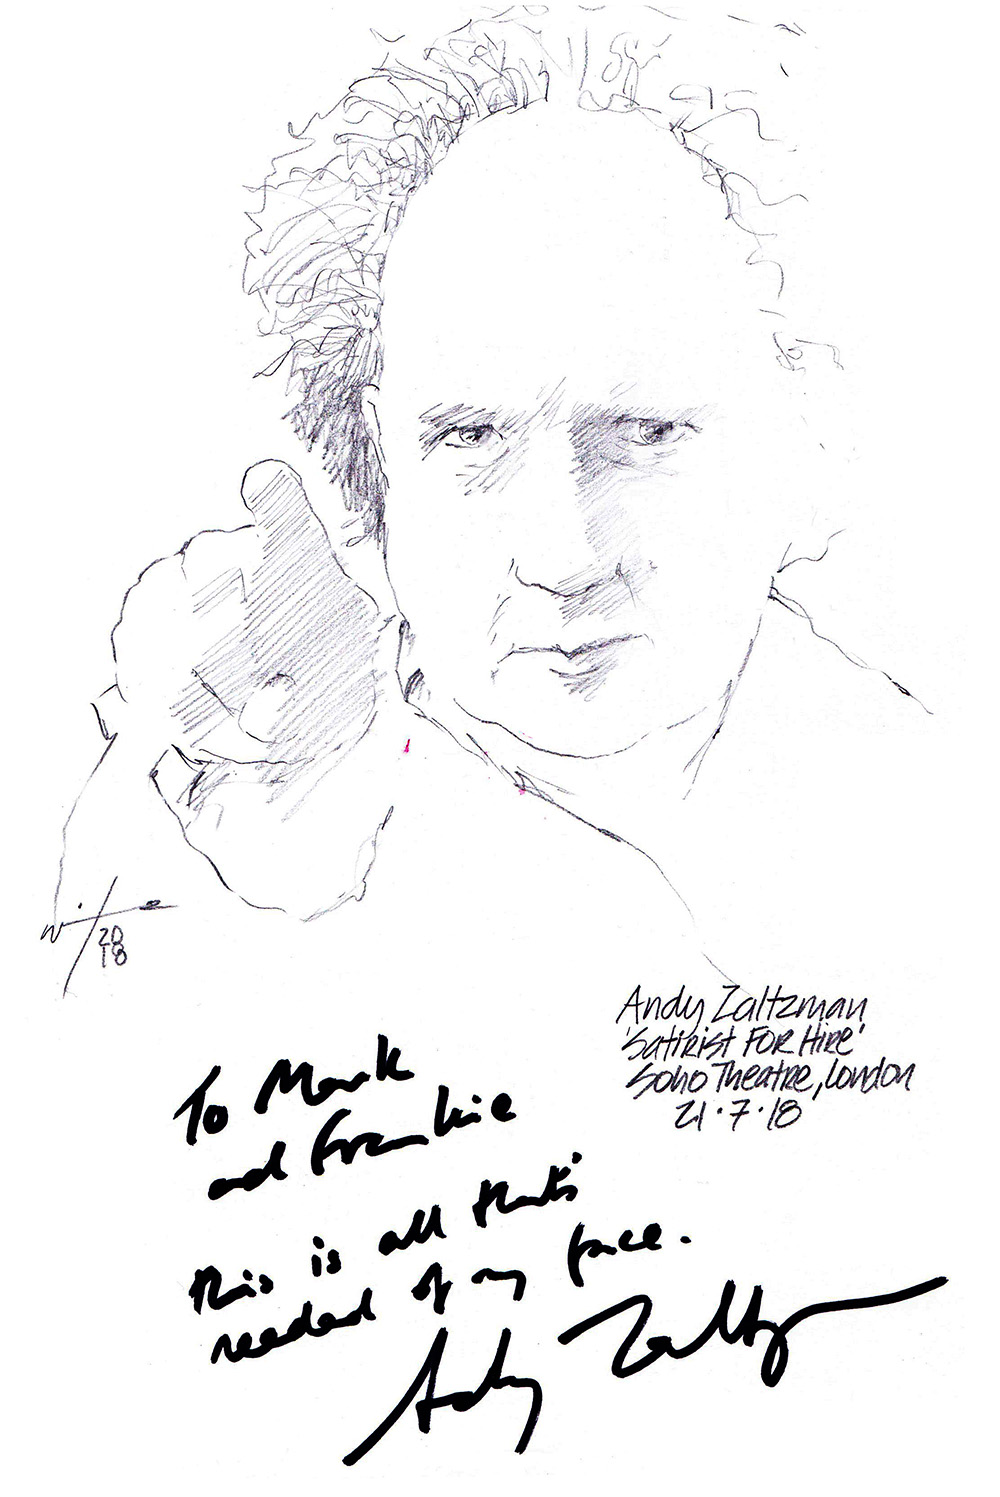 Autographed drawing of comedian Andy Zaltzman